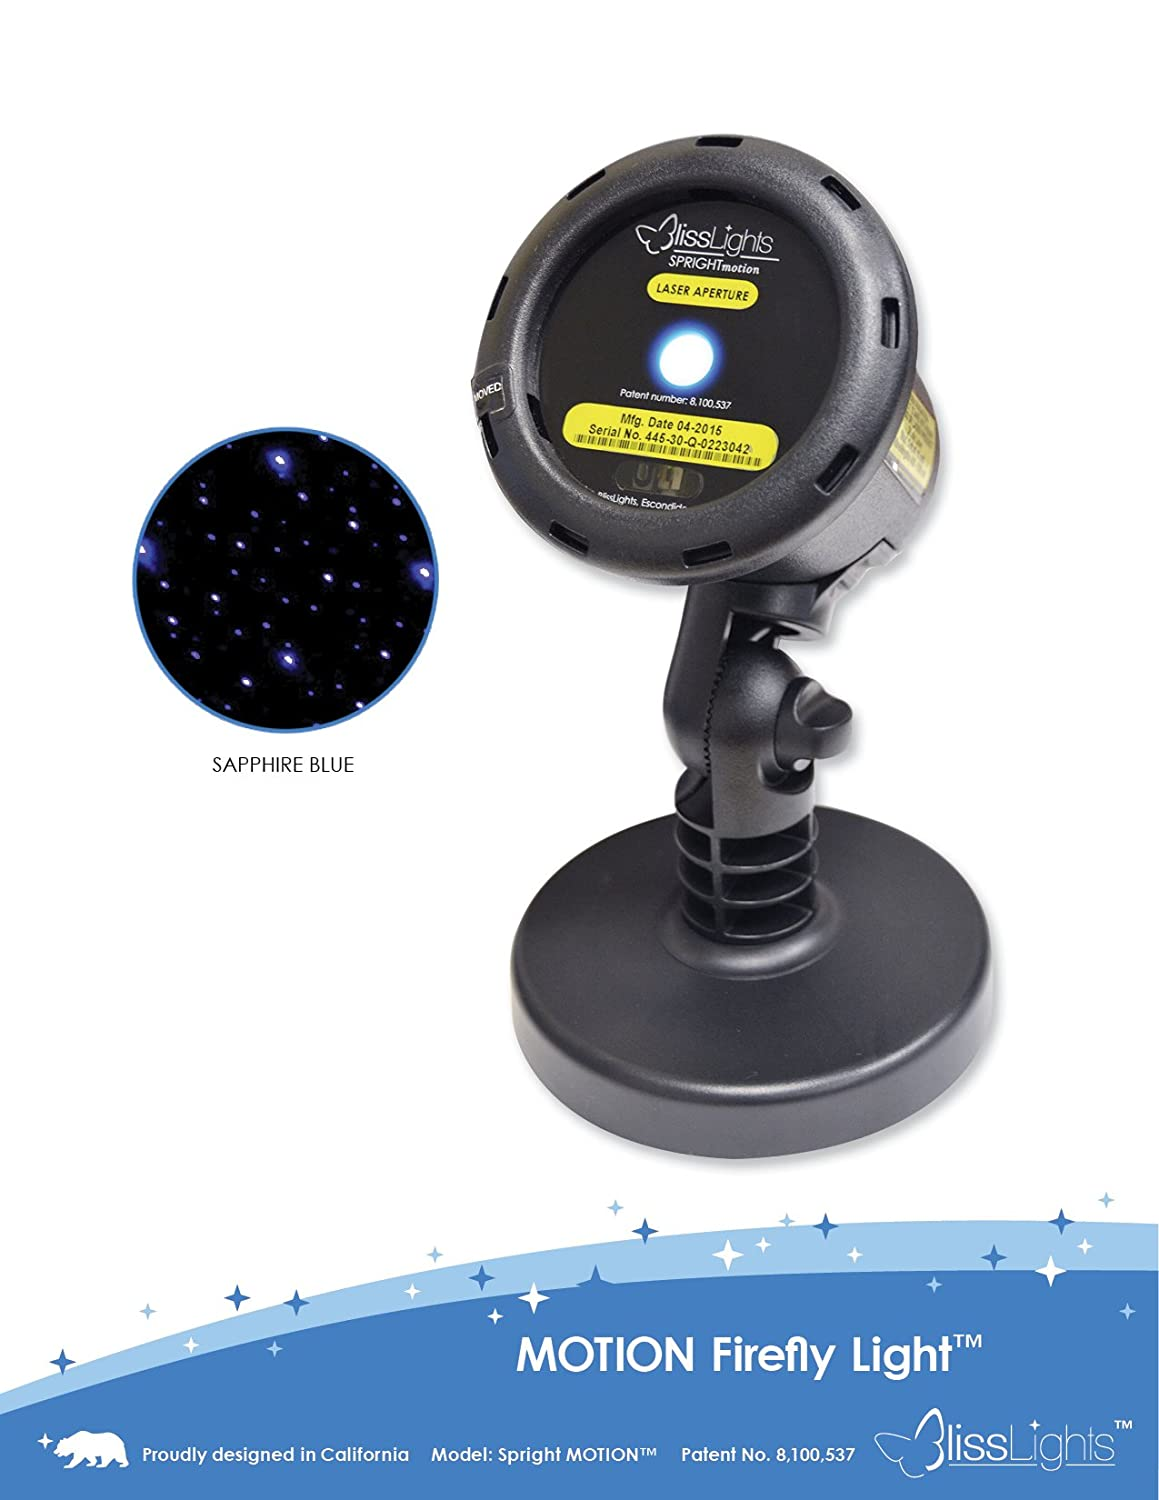 BlissLights Motion Blue FireFly Laser Projector. 10 Speed Settings With Remote Control and 2 Installation Options- Ground Stake or Base Attachment. Covers 50 Feet by 50 Feet. Easy to Install.